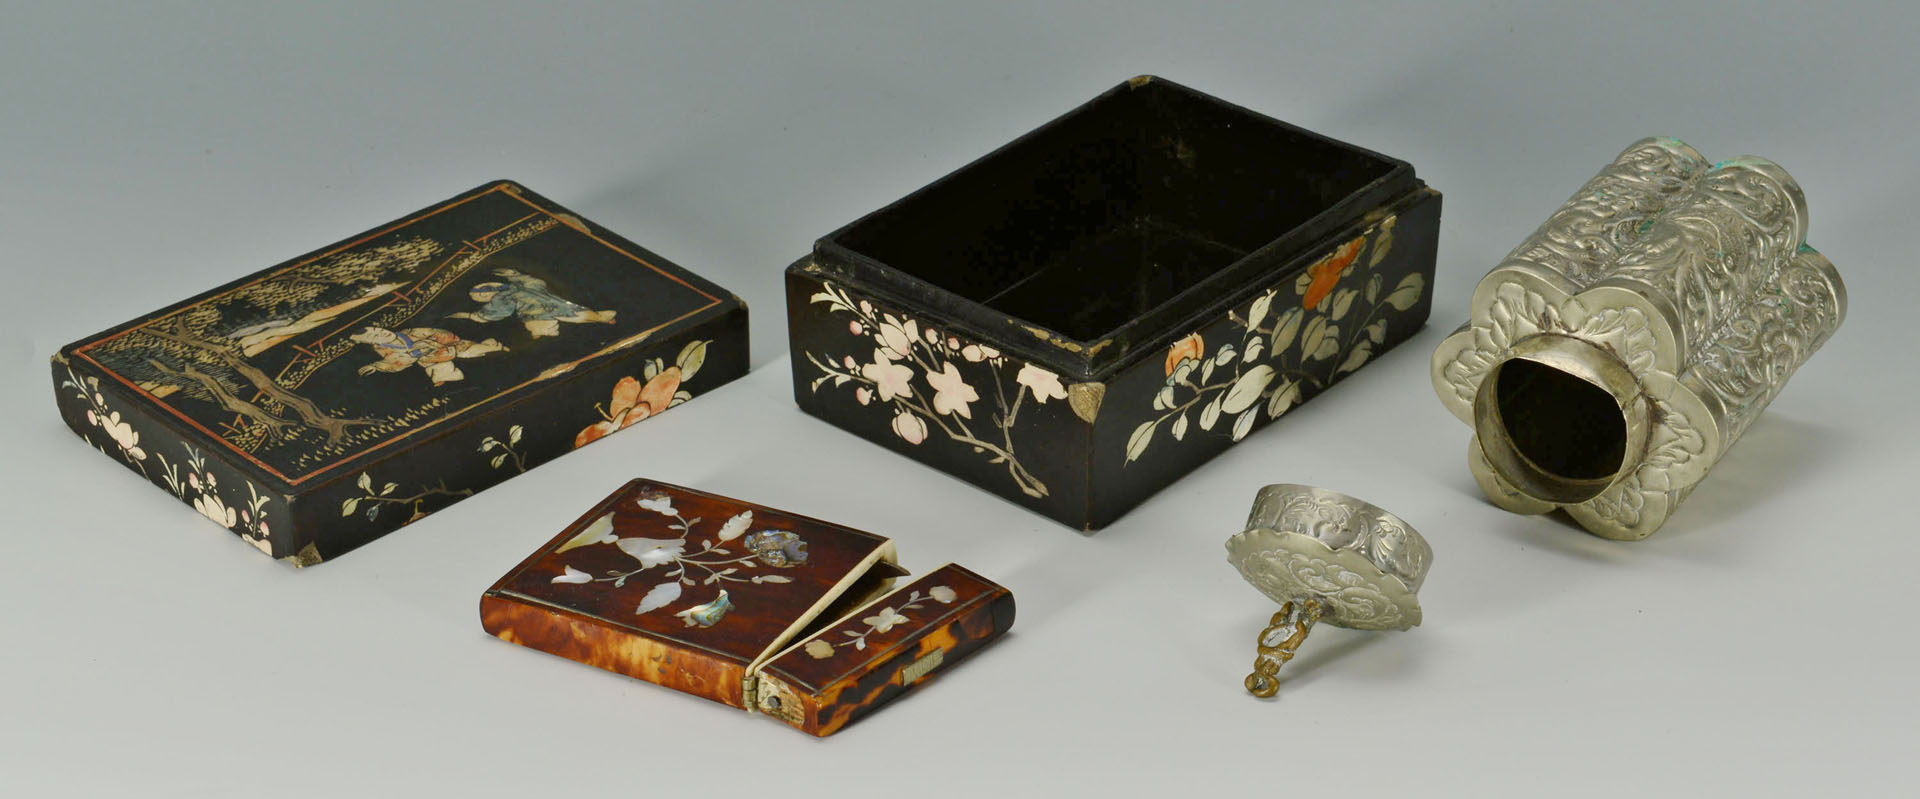 Four boxes including lacquer